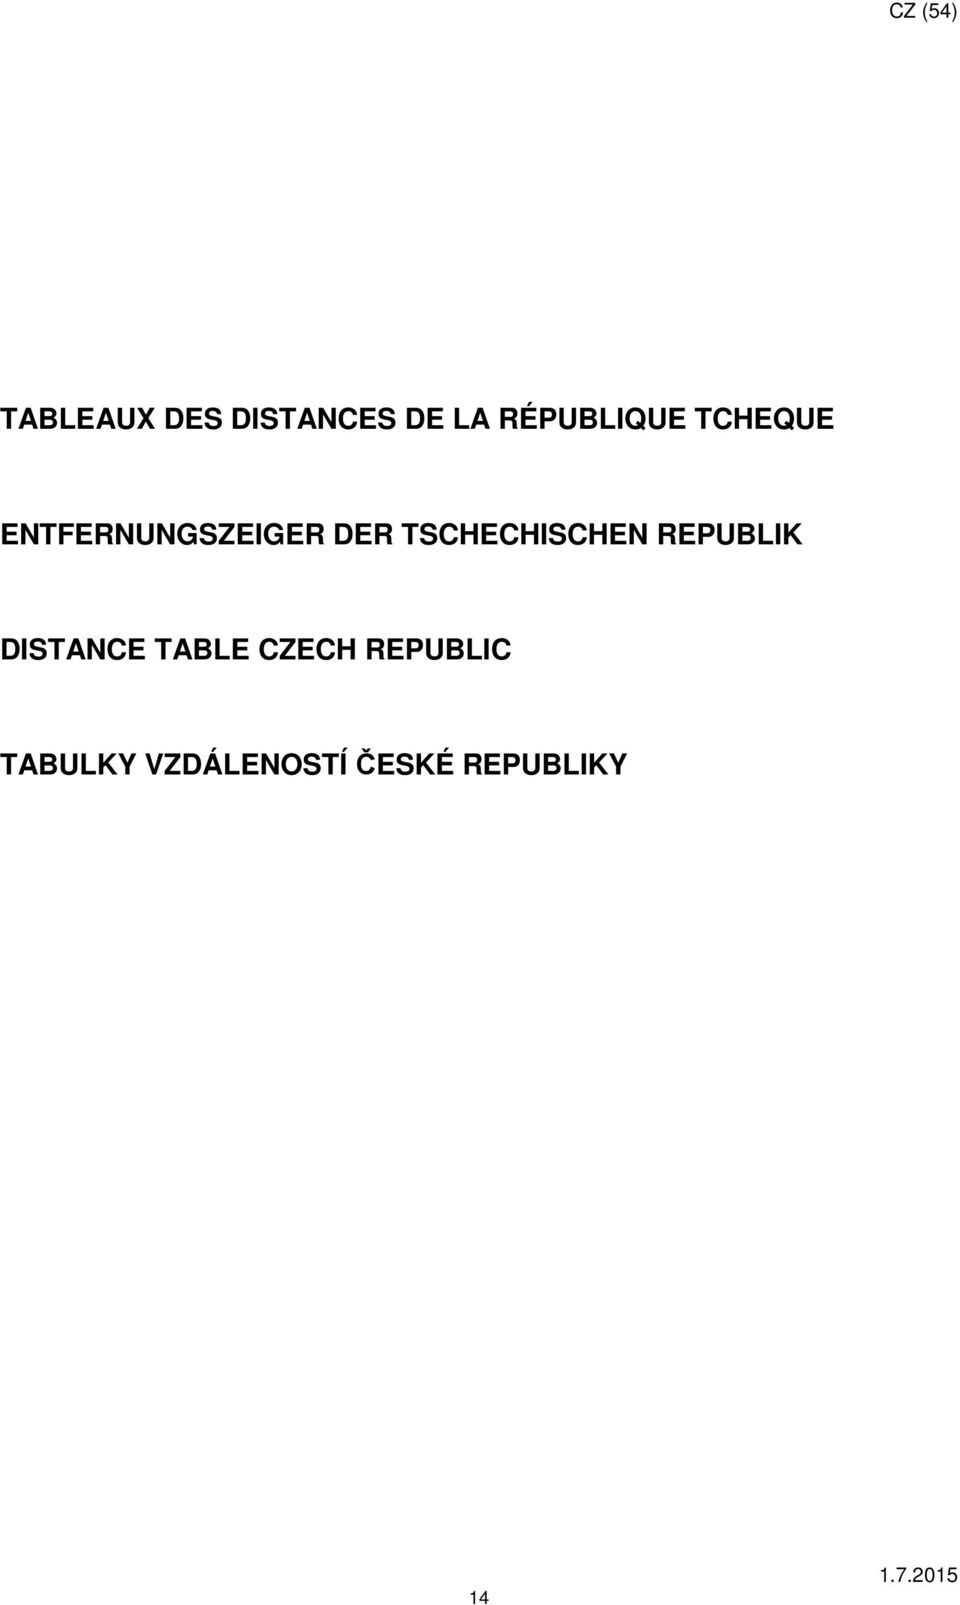 TSCHECHISCHEN REPUBLIK DISTANCE TABLE